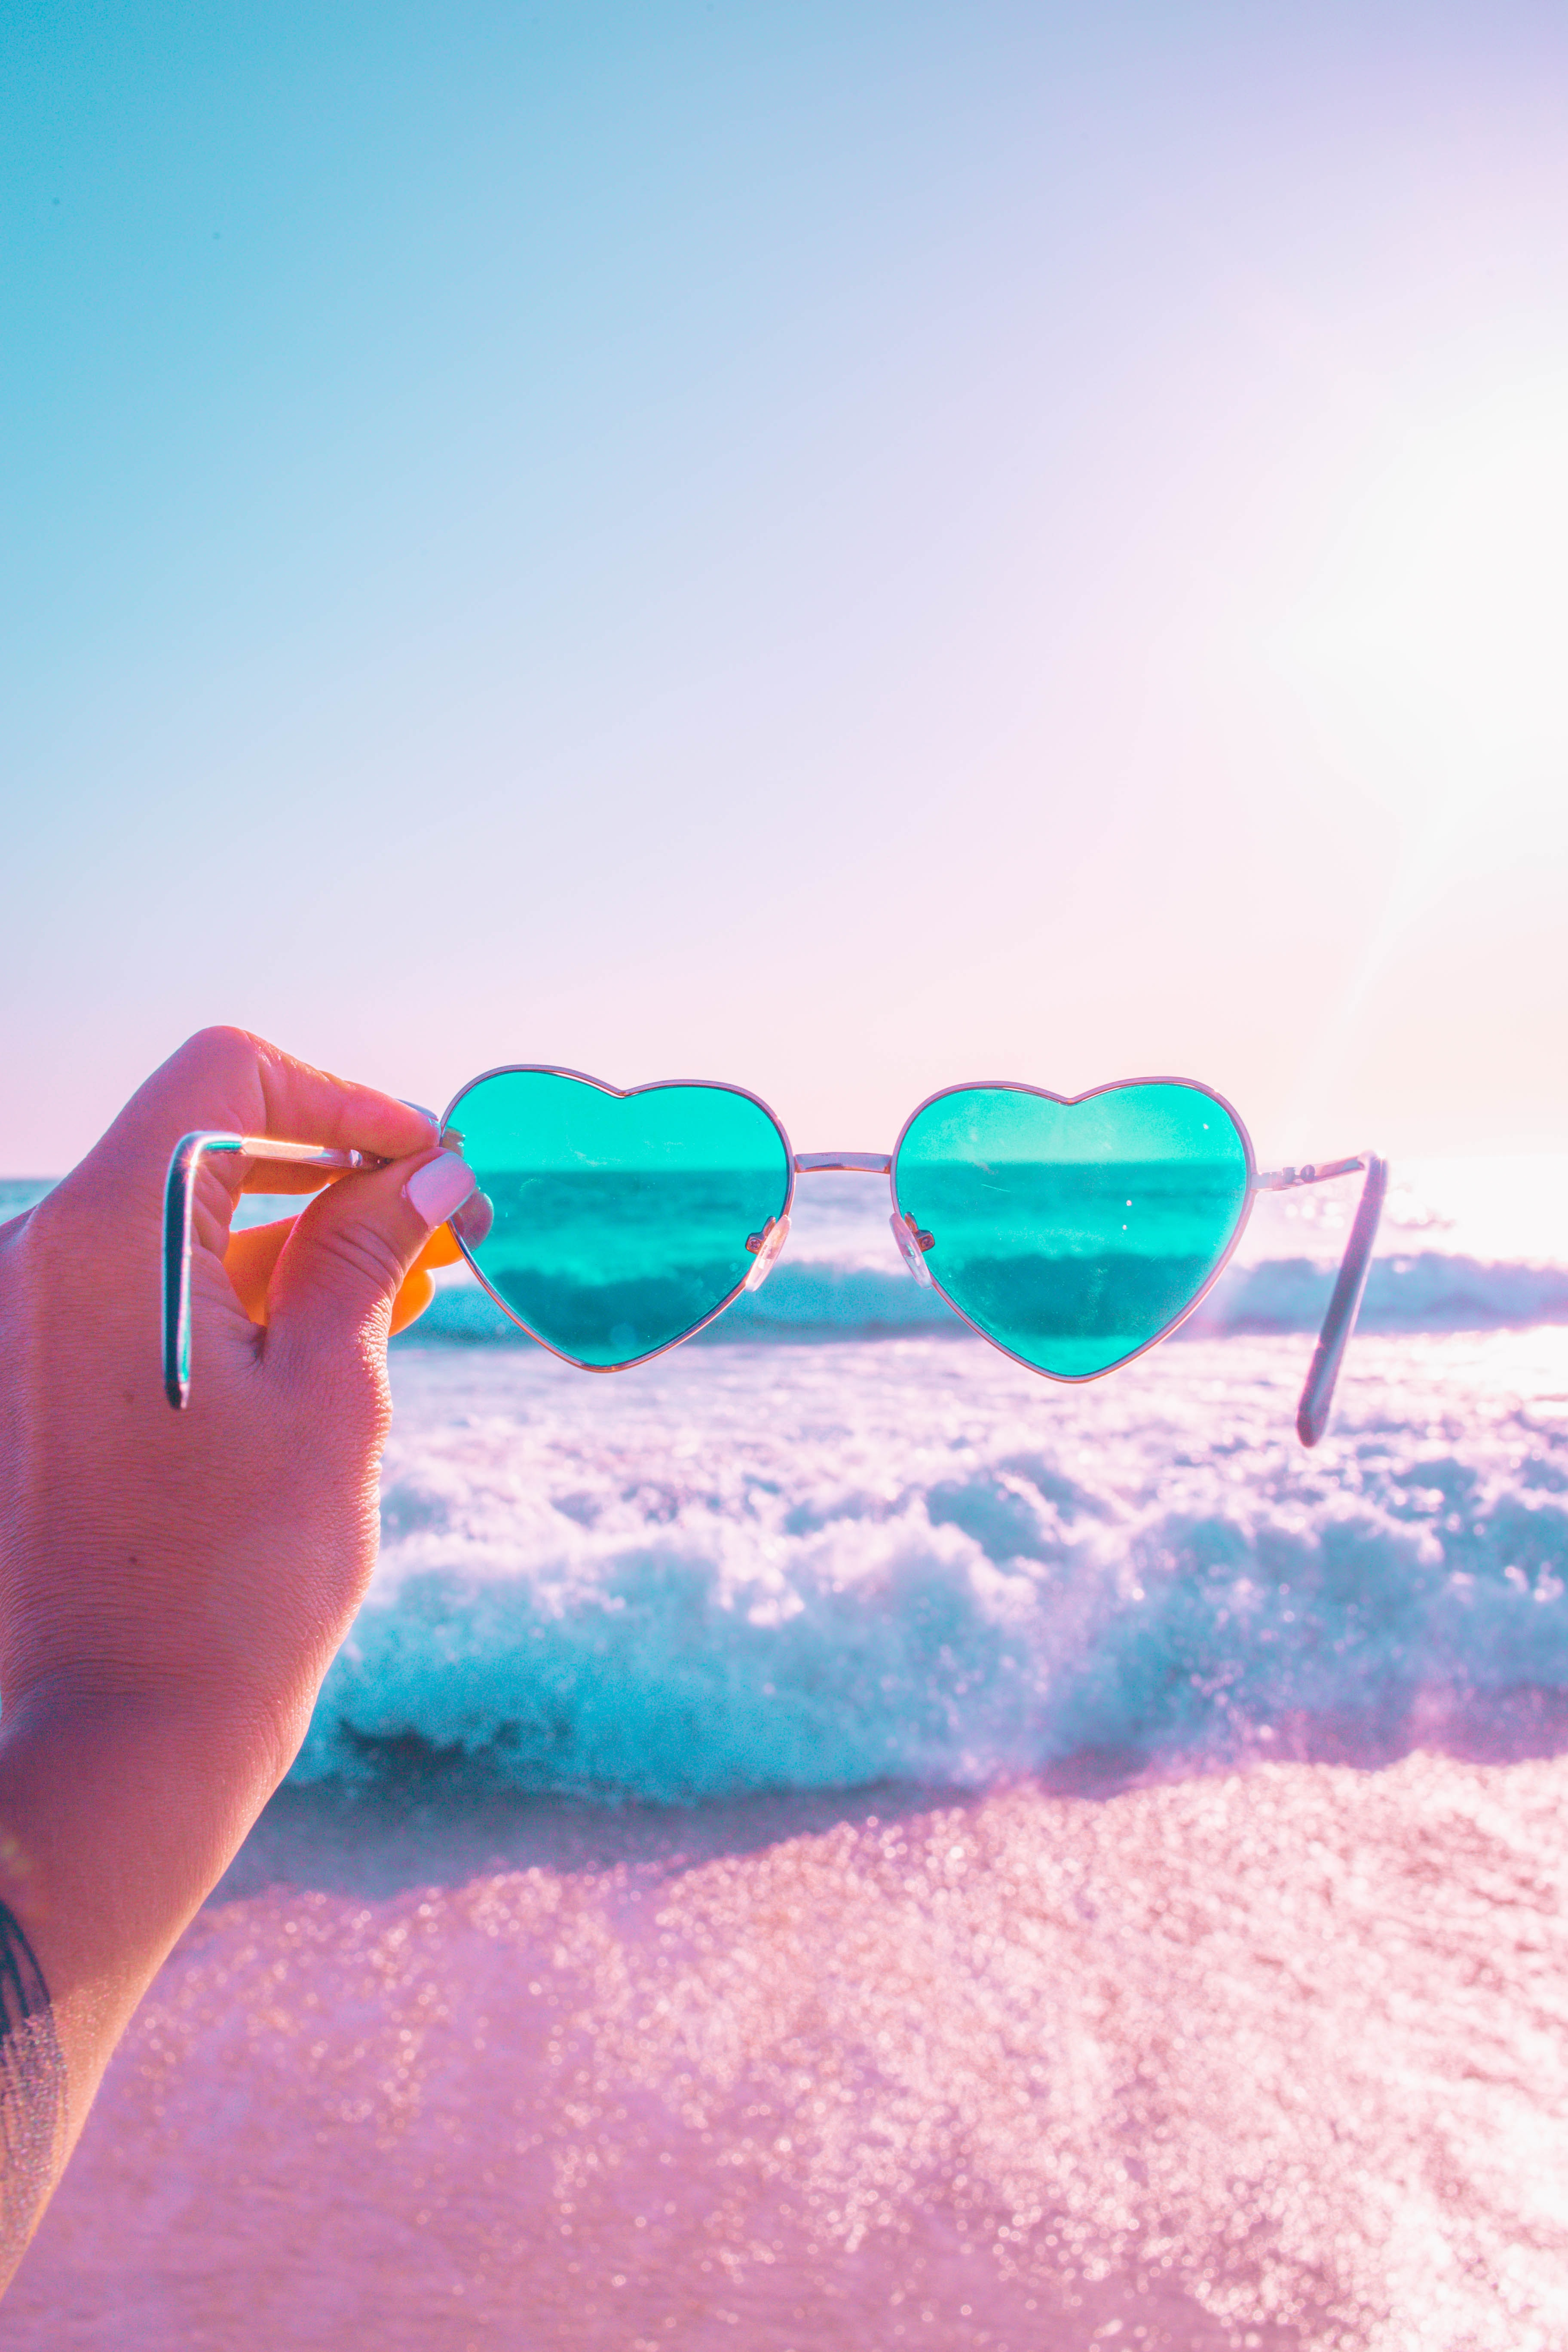 person holding heart shaped teal sunglasses with silver frames